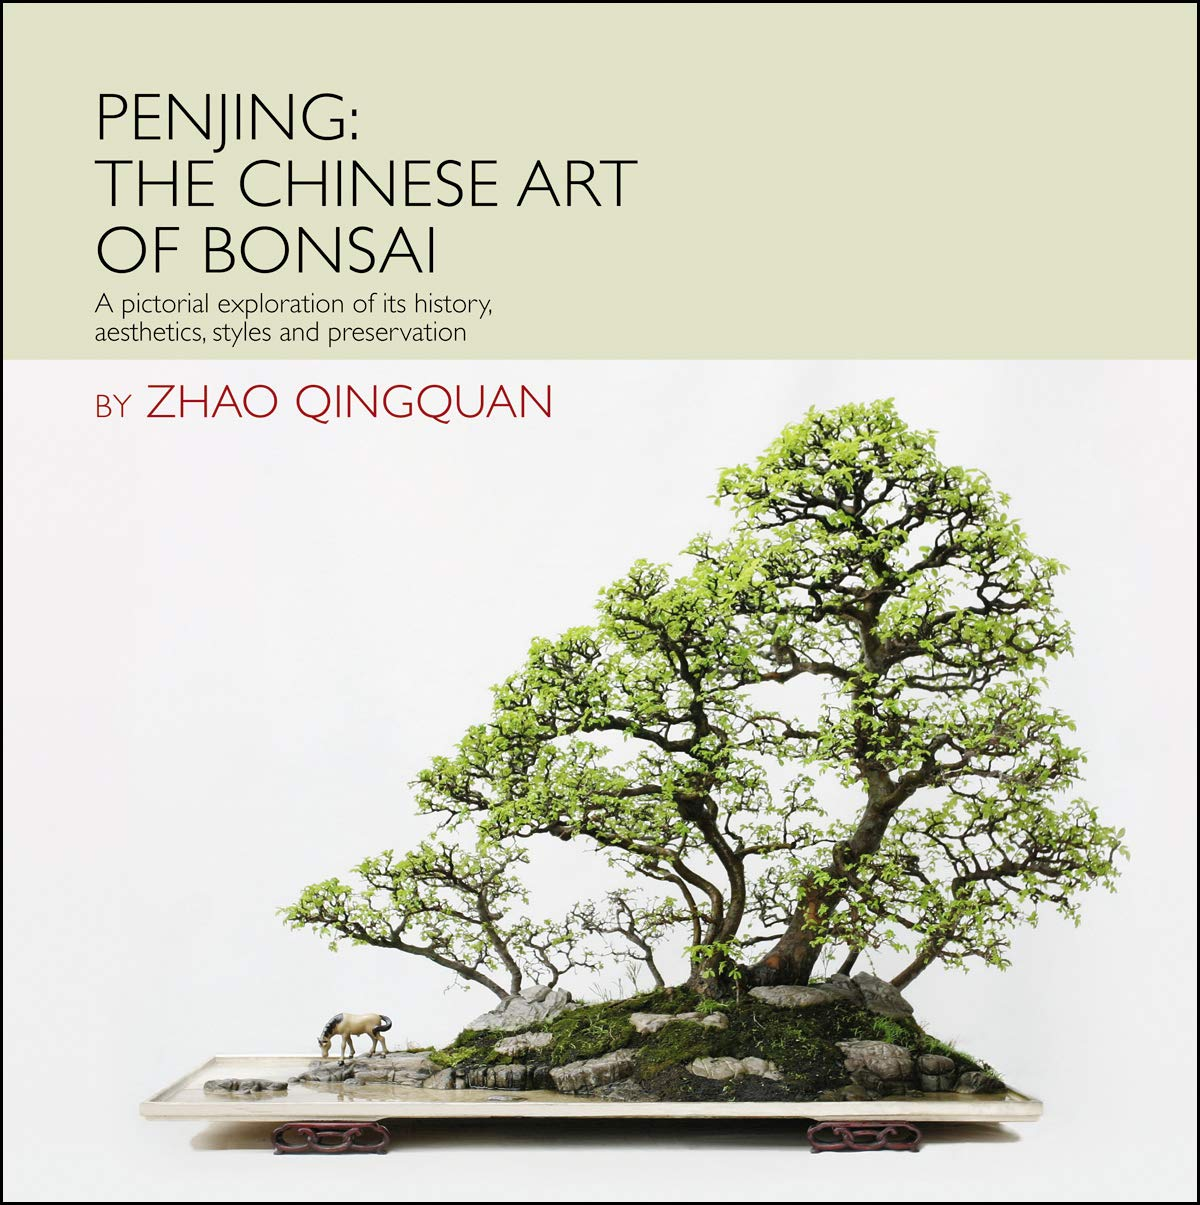 Penjing The Chinese Art Of Bonsai A Pictorial Exploration Of Its History Aesthetics Styles And Preservation Qingquan Zhao Le Huang Xuenian Han Kempinski Rob 0884203789623 Amazon Com Books